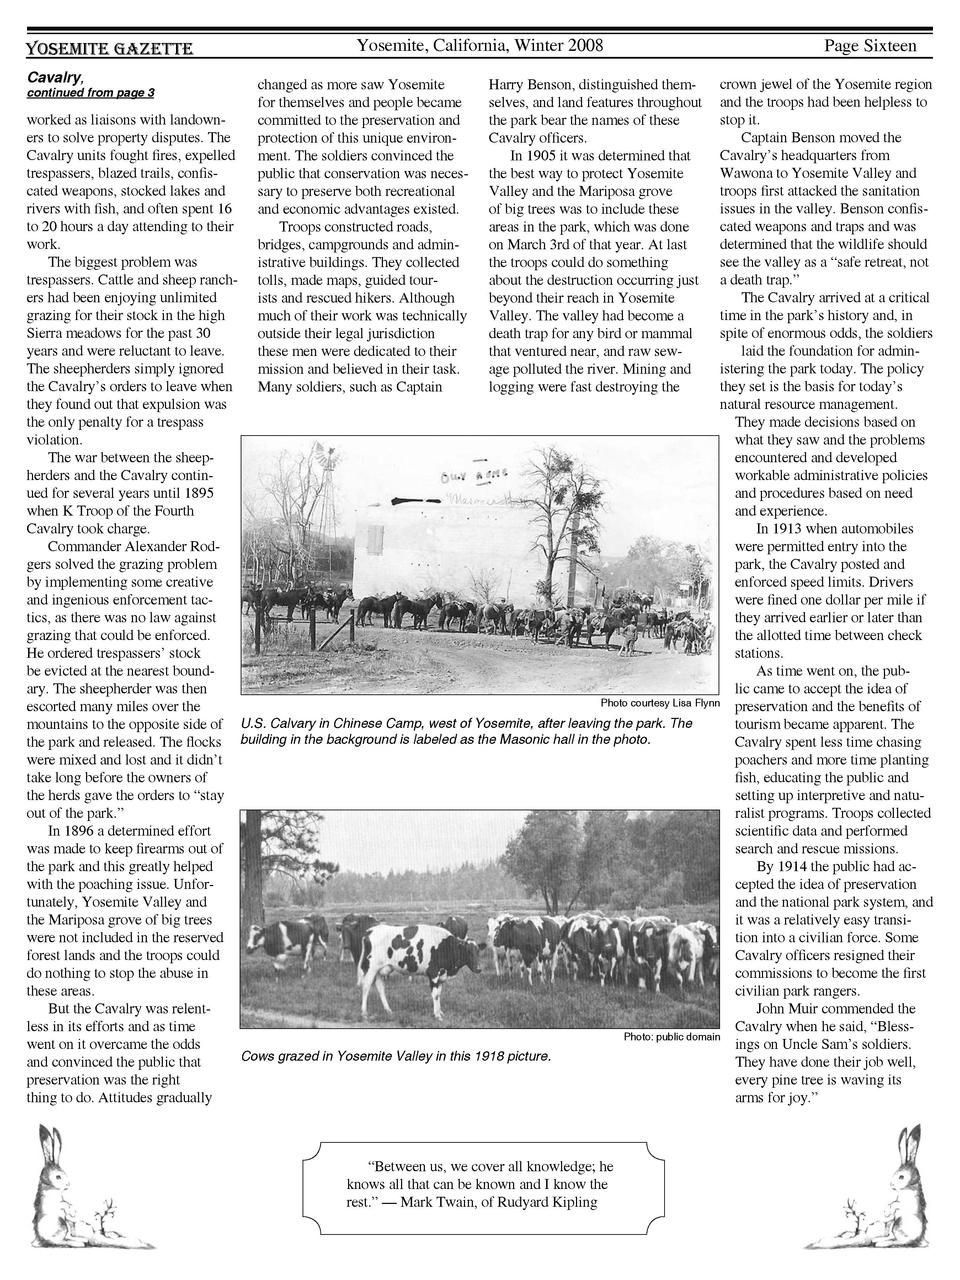 Yosemite Gazette Cavalry,  Yosemite, California, Winter 2008  Page Sixteen  crown jewel of the Yosemite region and the tro...